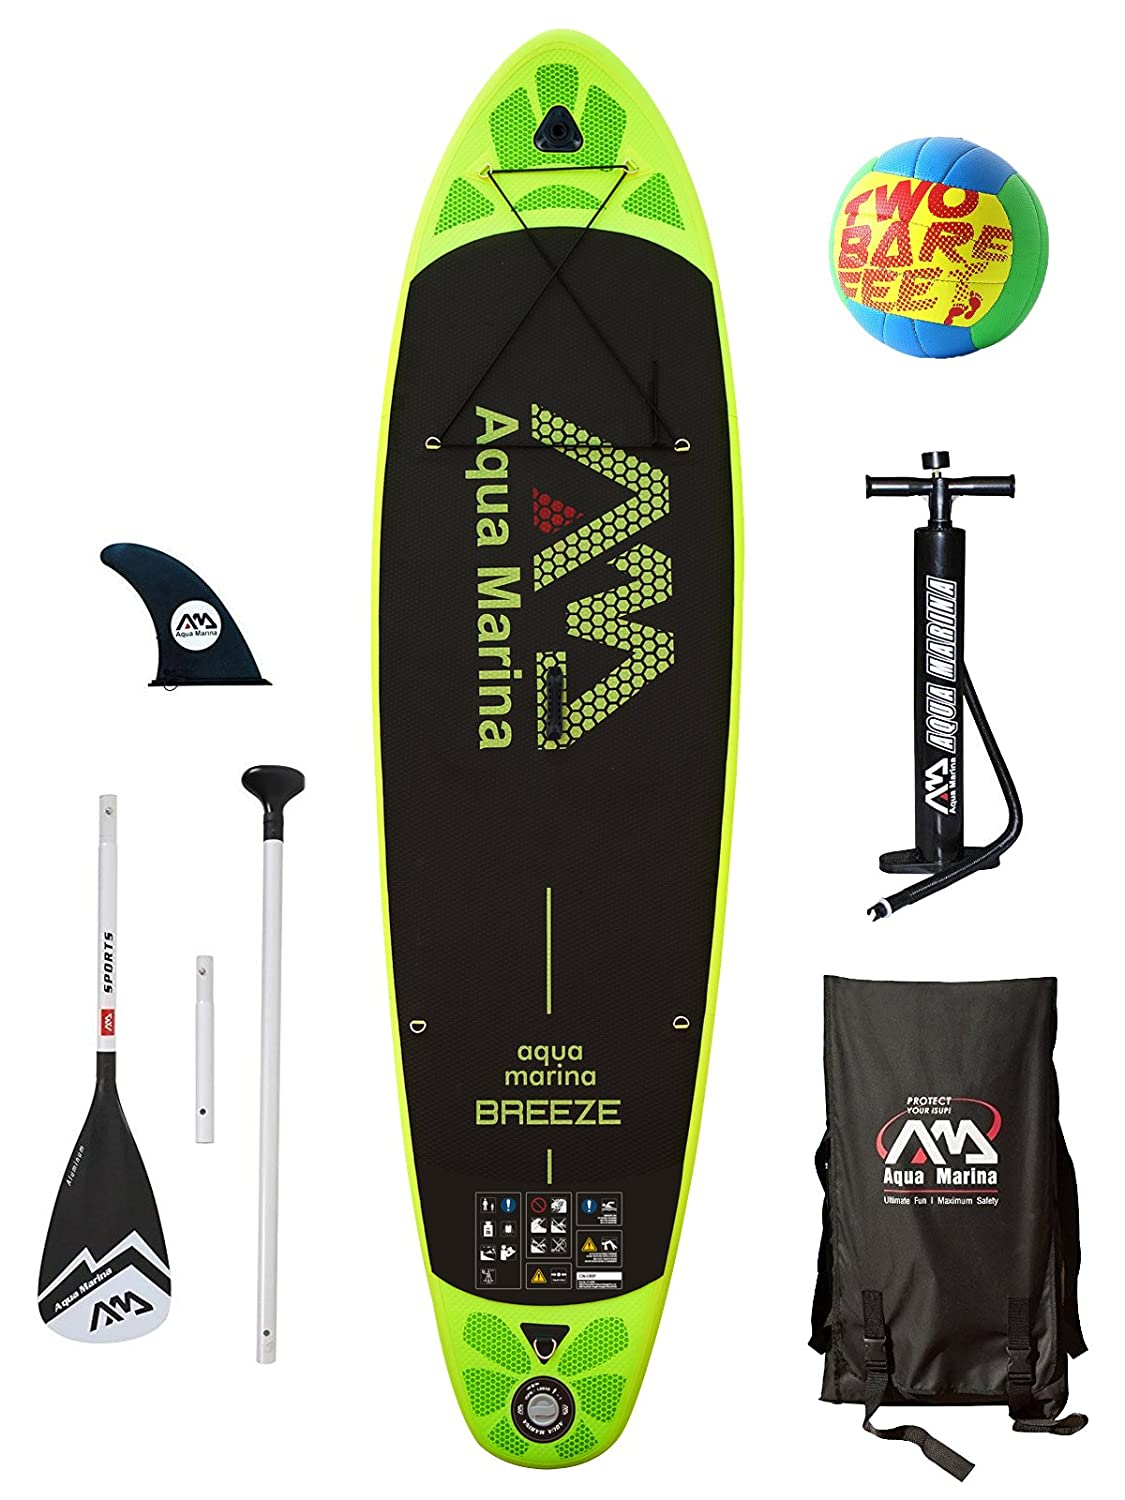 Aqua Marina Vapor Breeze Fusion Monster - Tabla de Paddle Surf hinchable, Breeze 99 (Starter Pack): Amazon.es: Deportes y aire libre